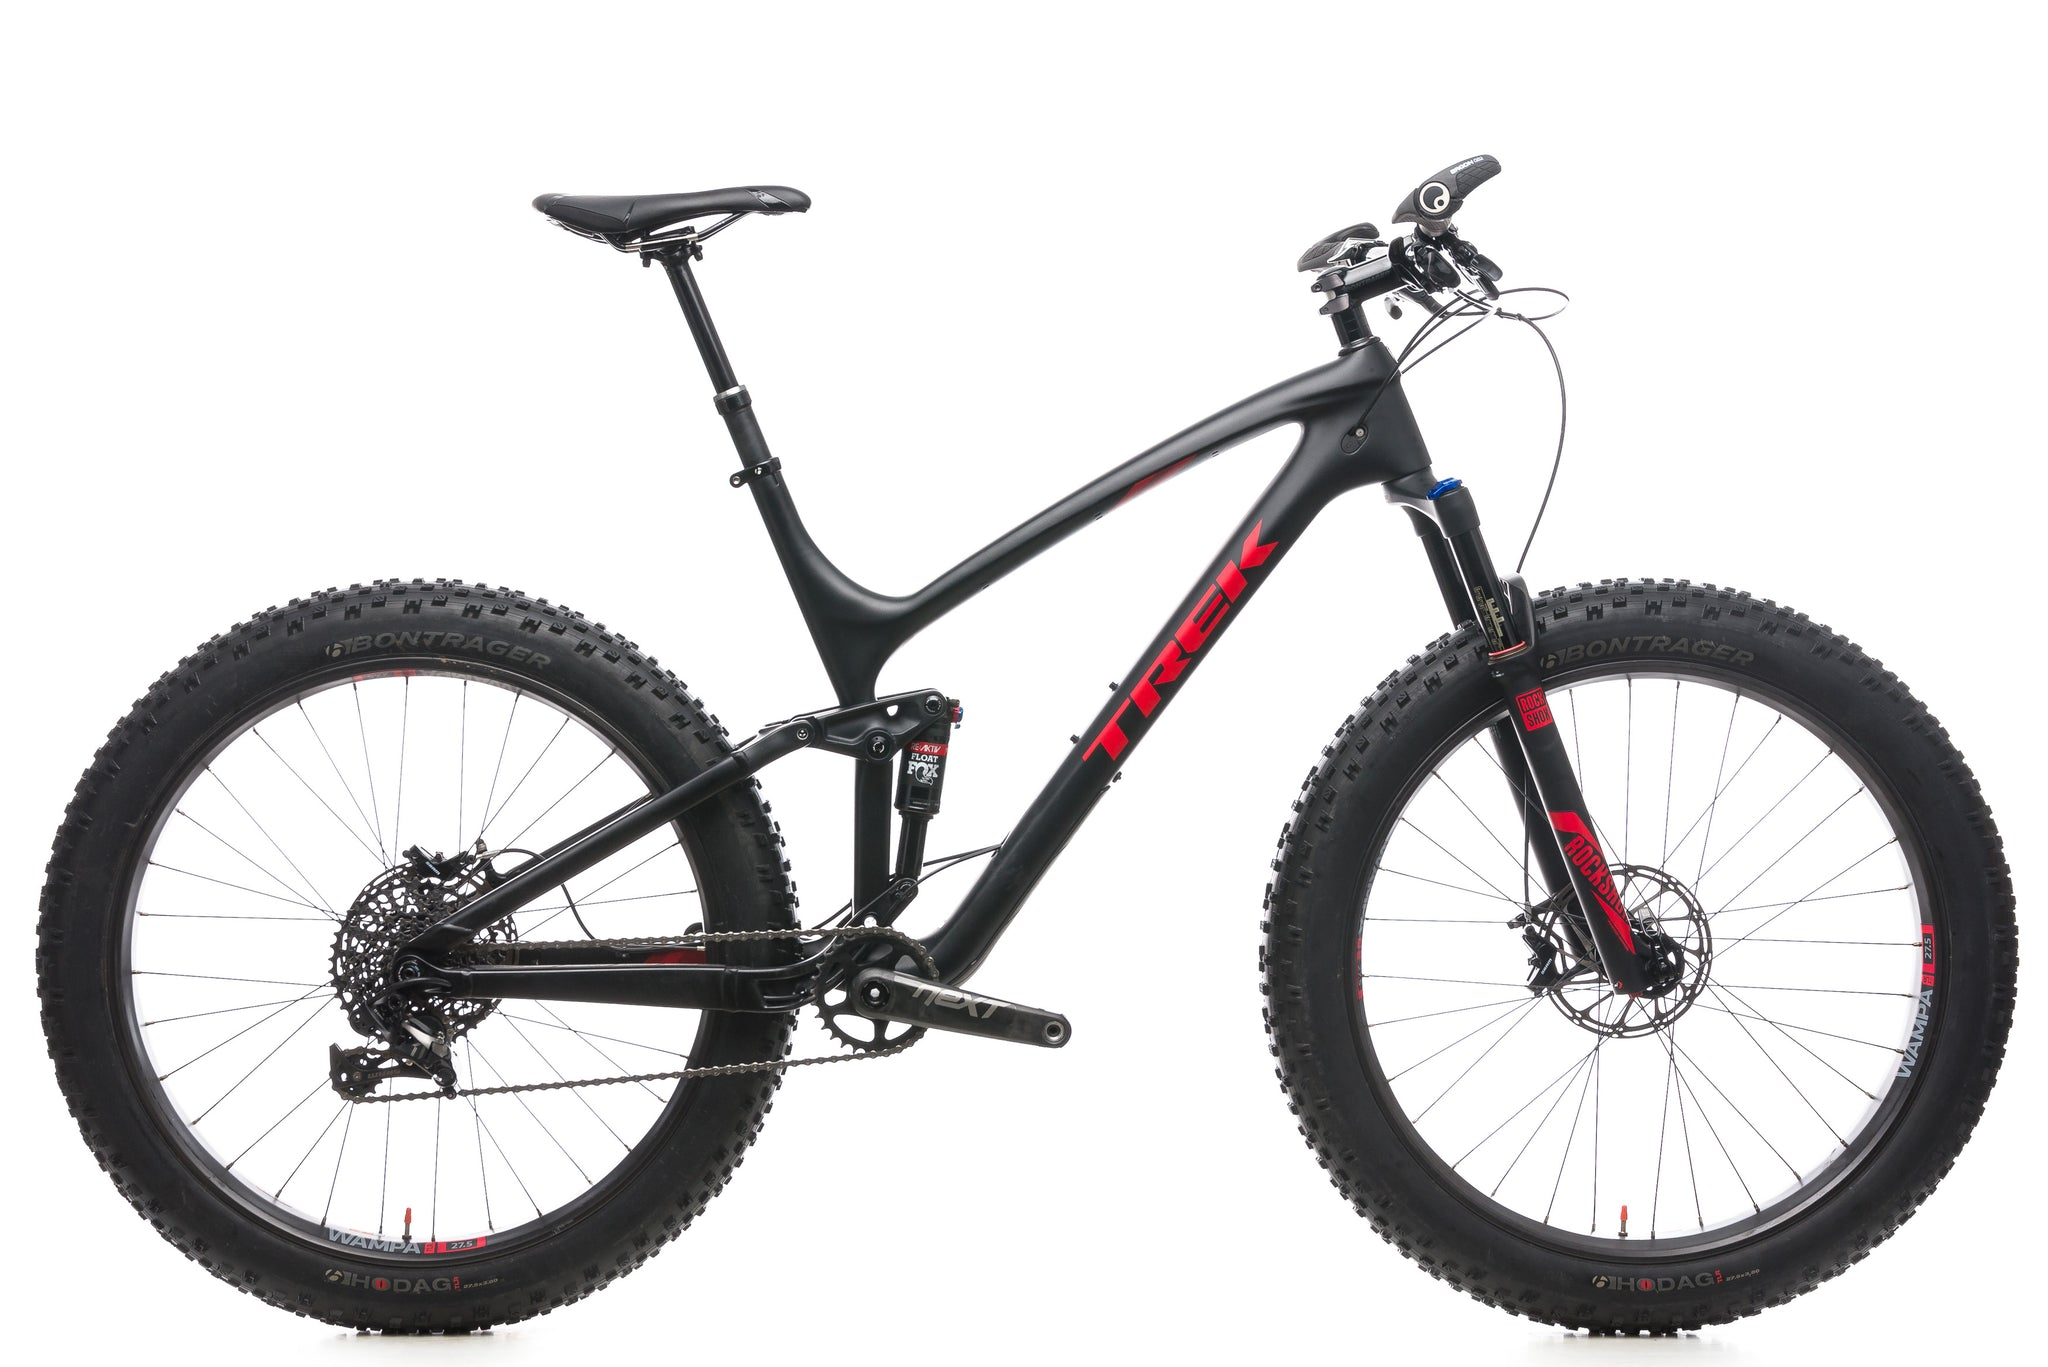 "Trek Farley EX 9.8 21.5"" Bike - 2017"